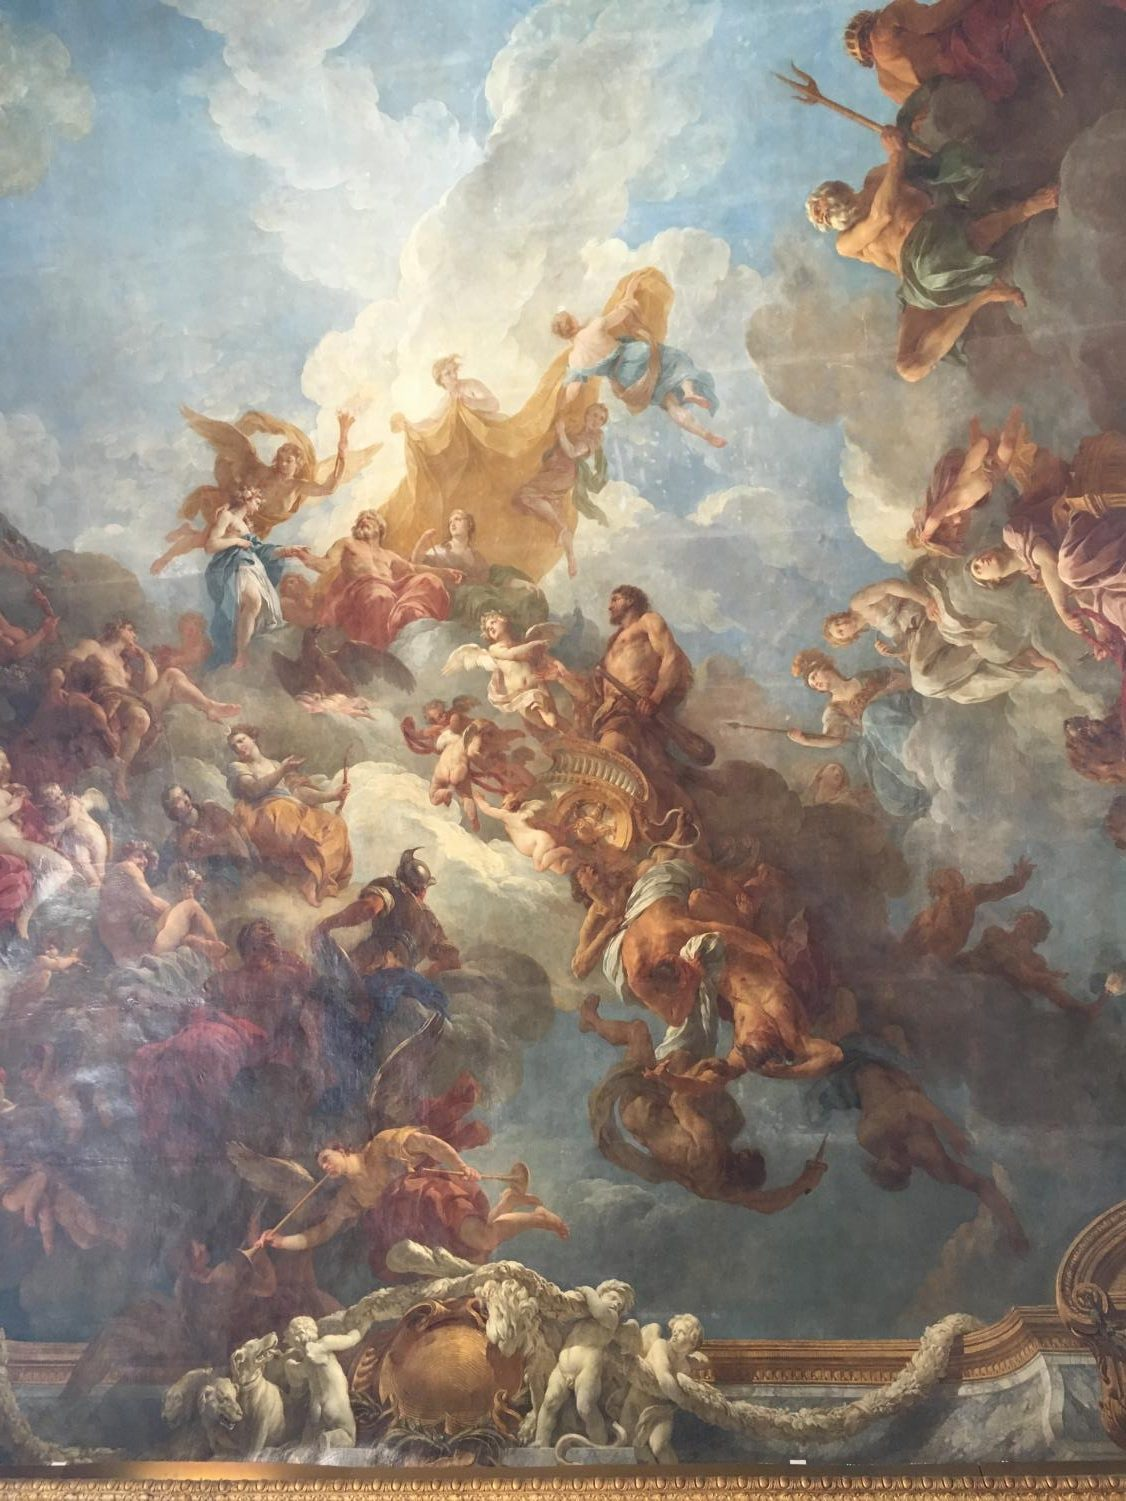 A+mural+covers+one+of+the+ceilings+in+the+Palace+of+Versailles+which+depicts+the+Greek+gods+and+other+mythical+figures.%0A